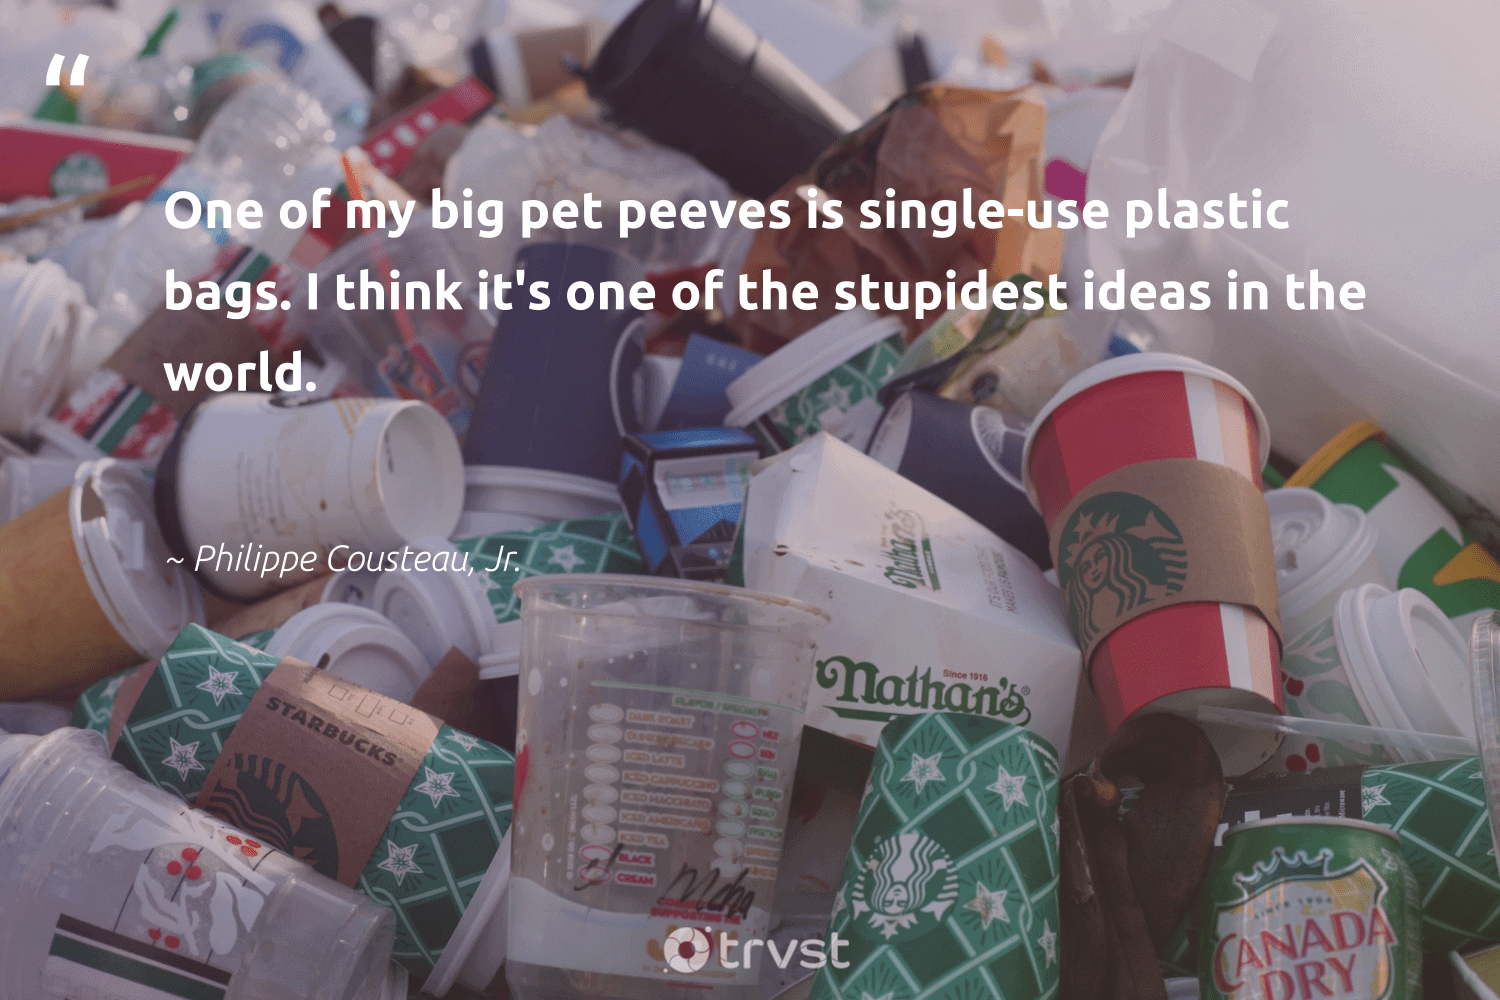 """""""One of my big pet peeves is single-use plastic bags. I think it's one of the stupidest ideas in the world.""""  - Philippe Cousteau, Jr. #trvst #quotes #plasticwaste #plastic #dotherightthing #noplanetb #beinspired #plasticsucks #changeahabit #ecoconscious #thinkgreen #microplastic"""